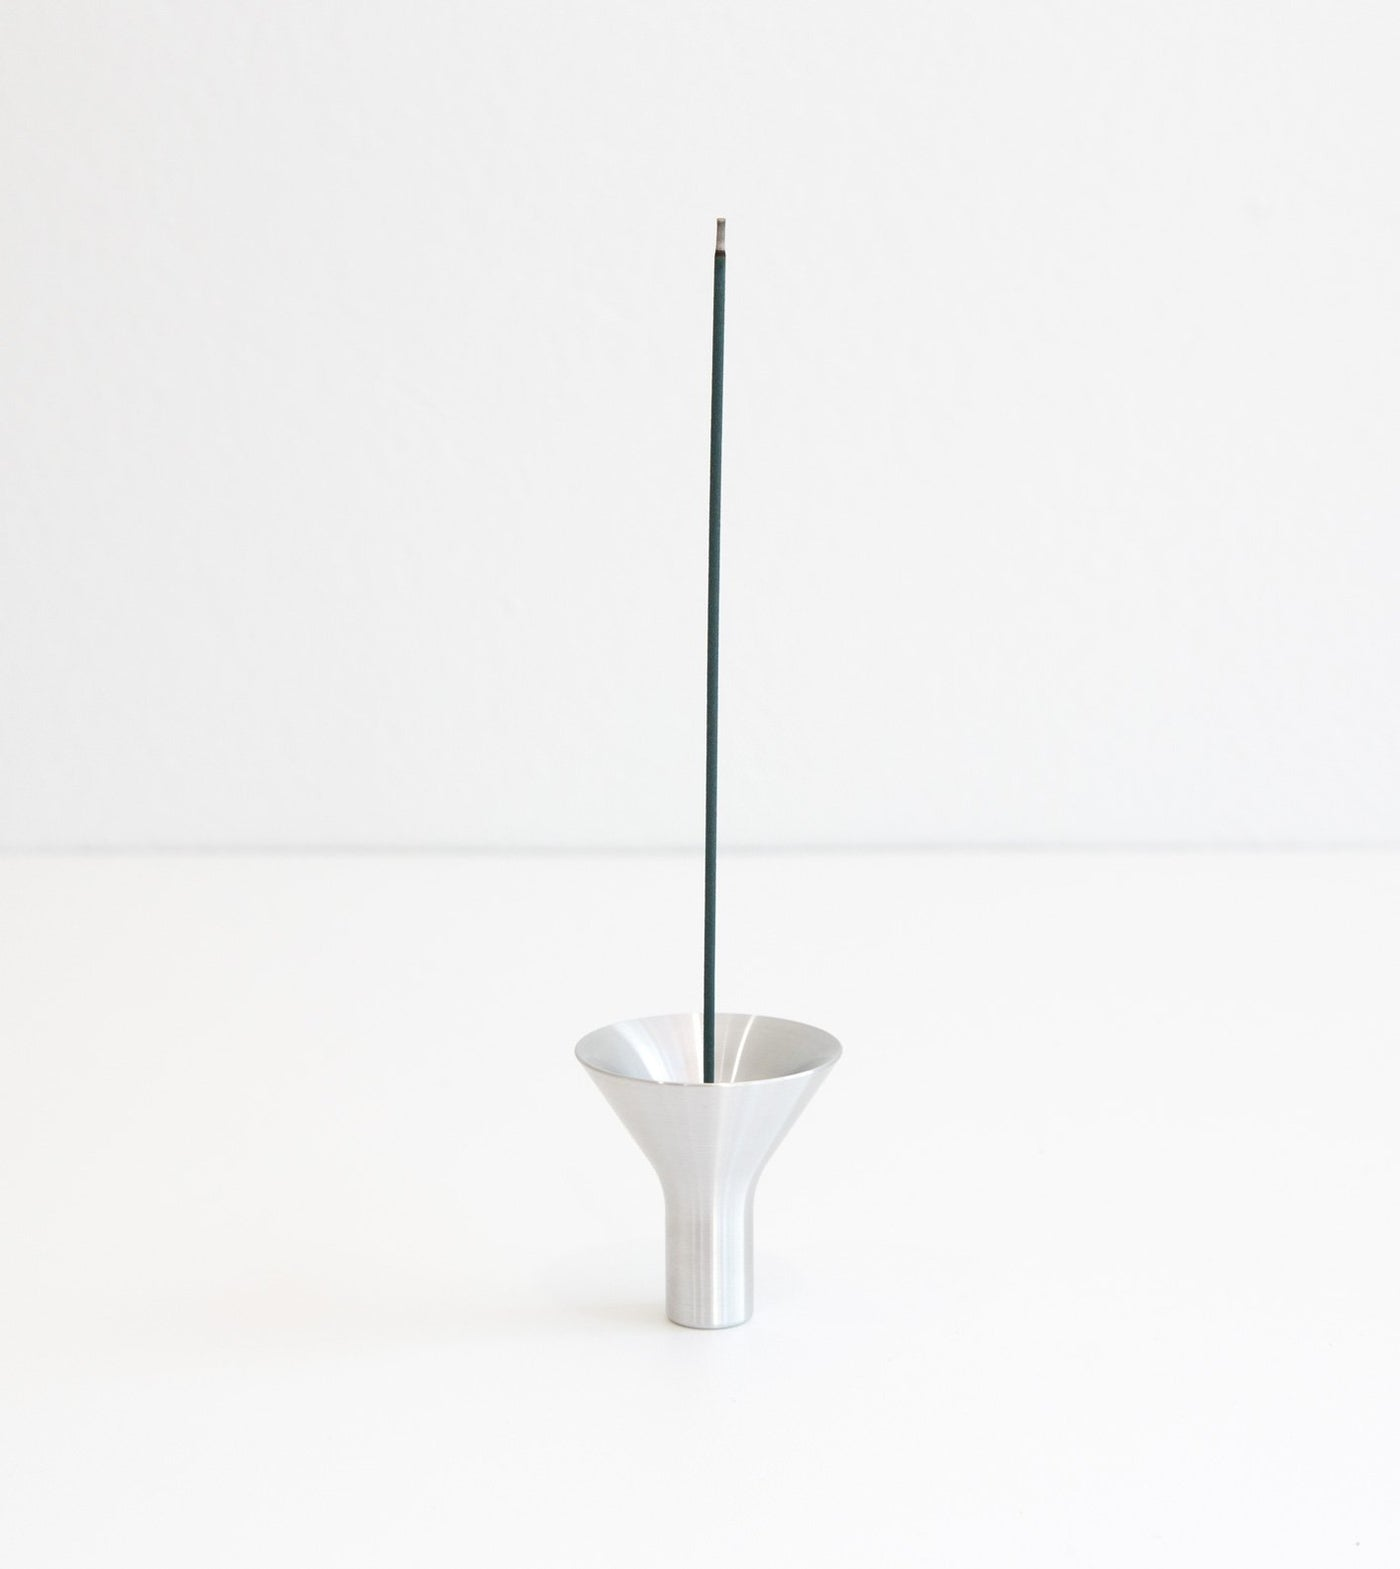 incense holder, designer incense holder, incense holder Australia, brass incense holder